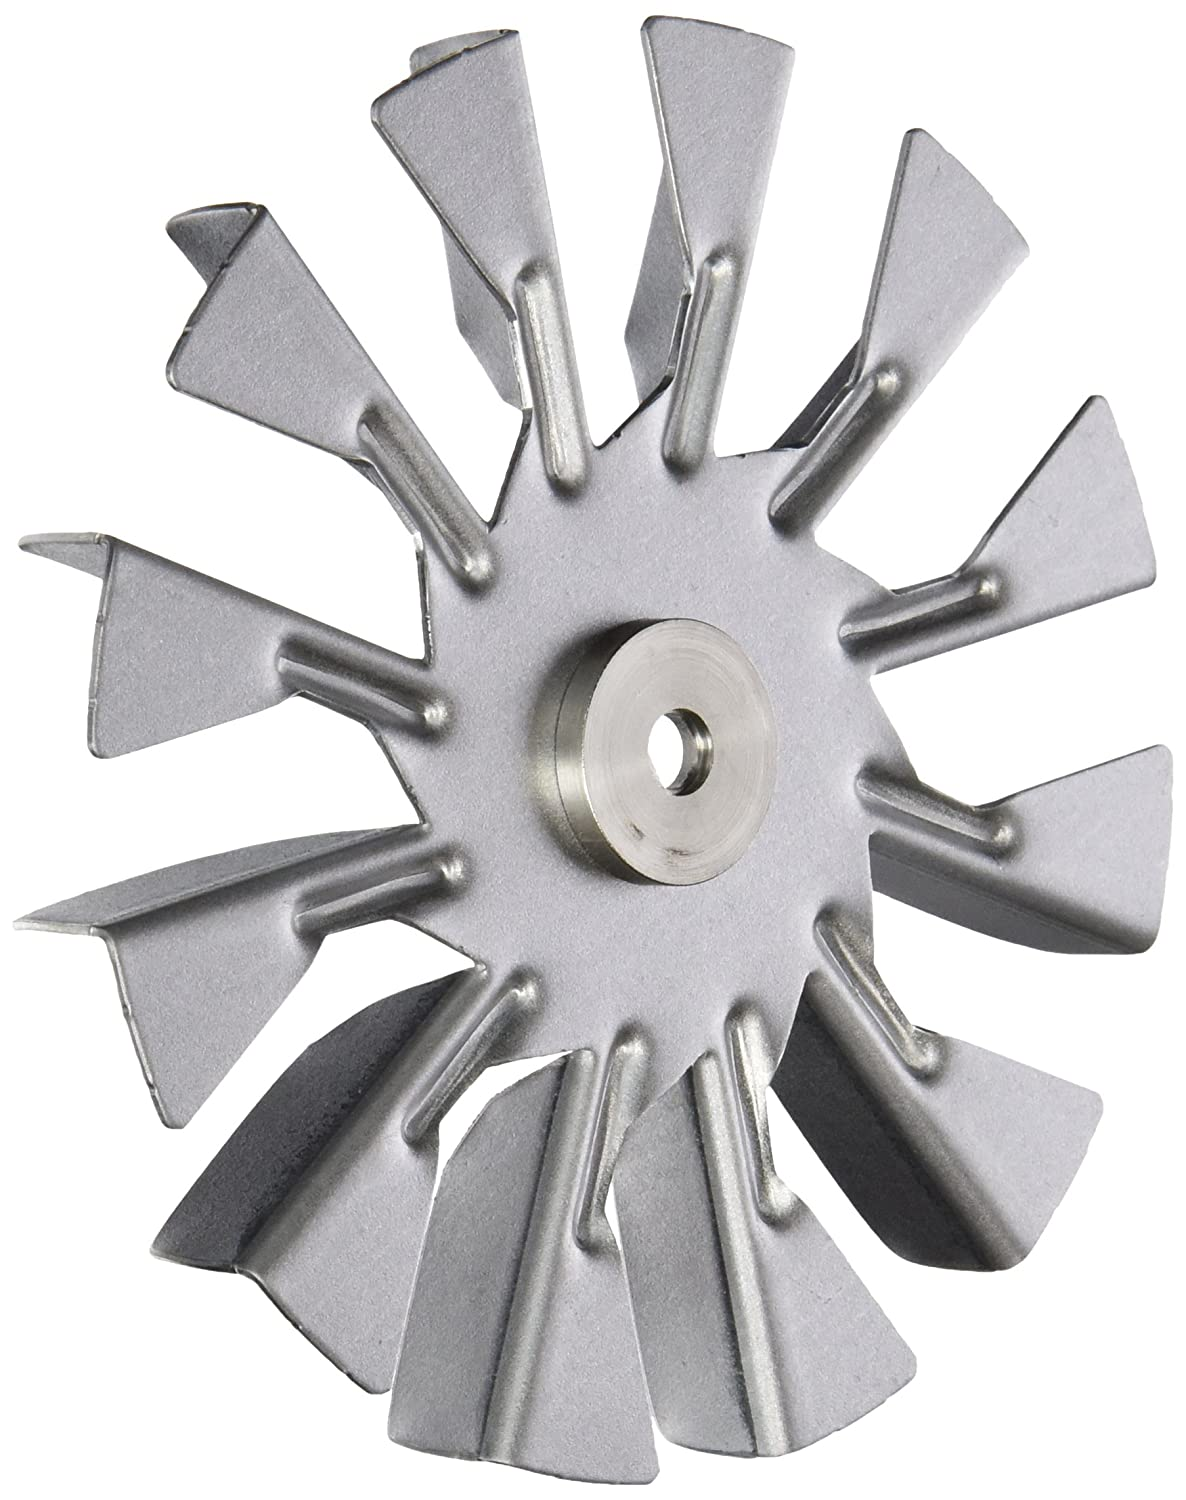 General Electric WB02T10289 Range/Stove/Oven Fan Blade